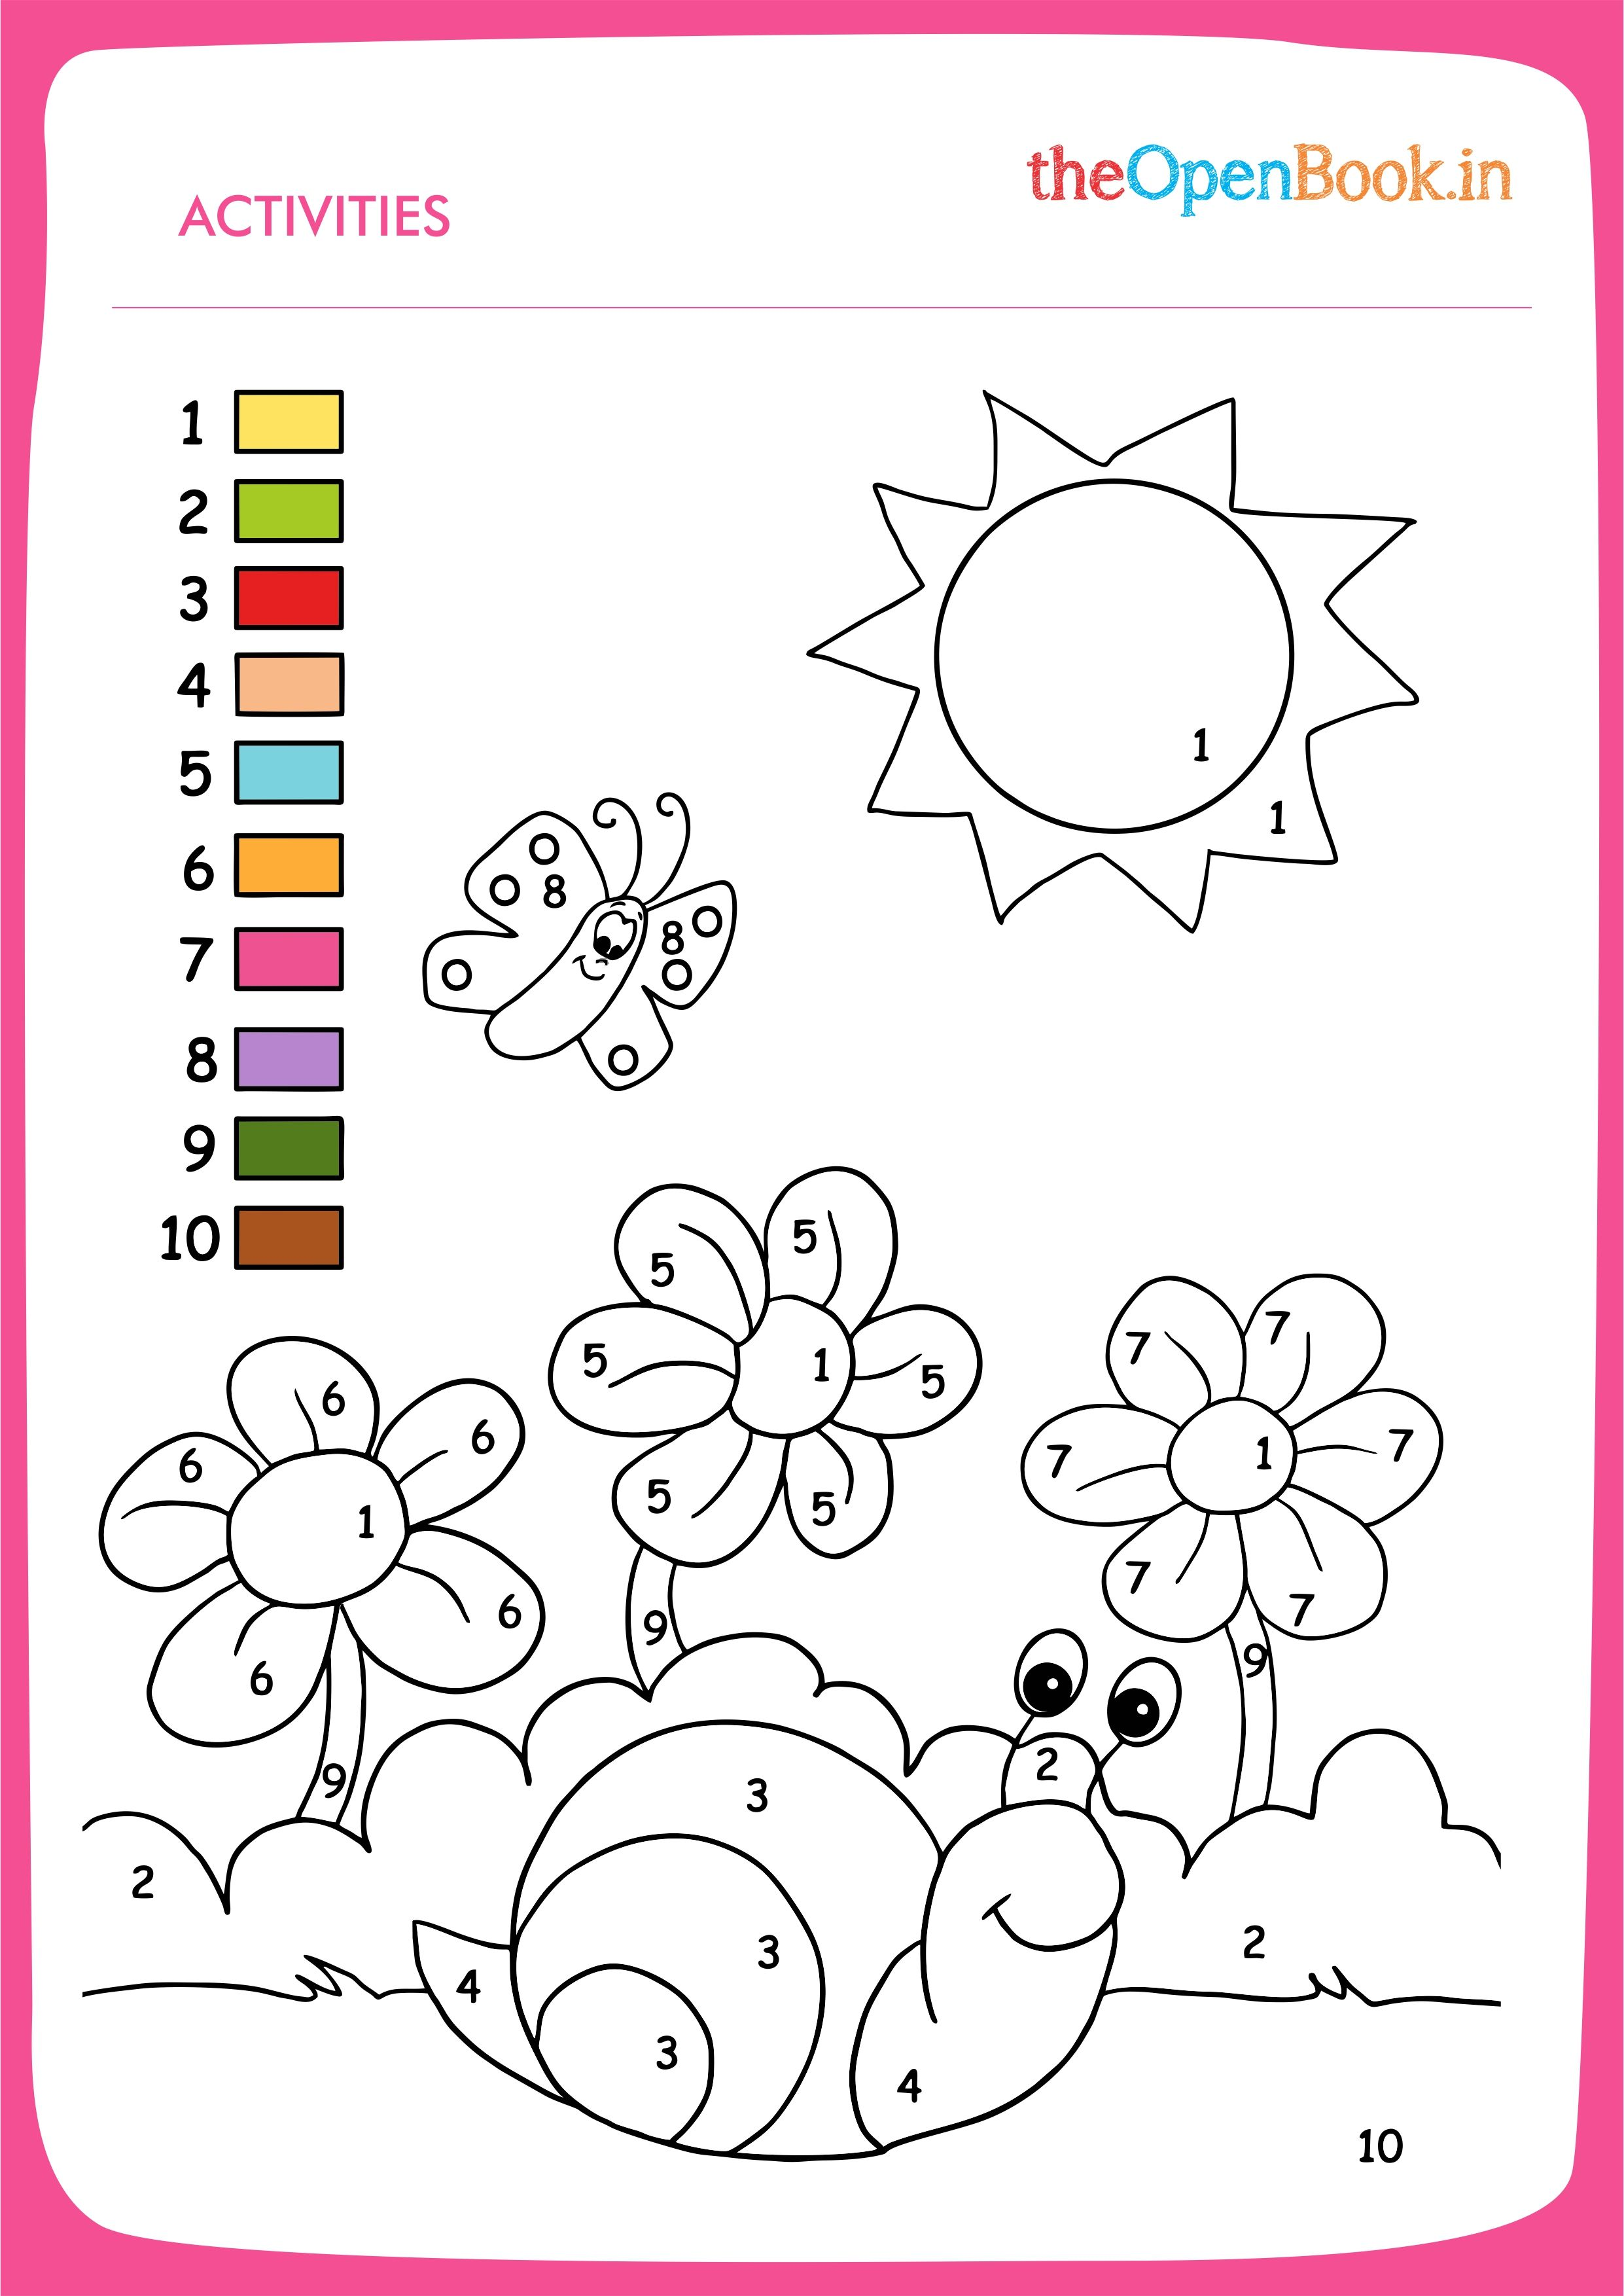 Pin By Thenewopenbook On Printable Activities For Kids